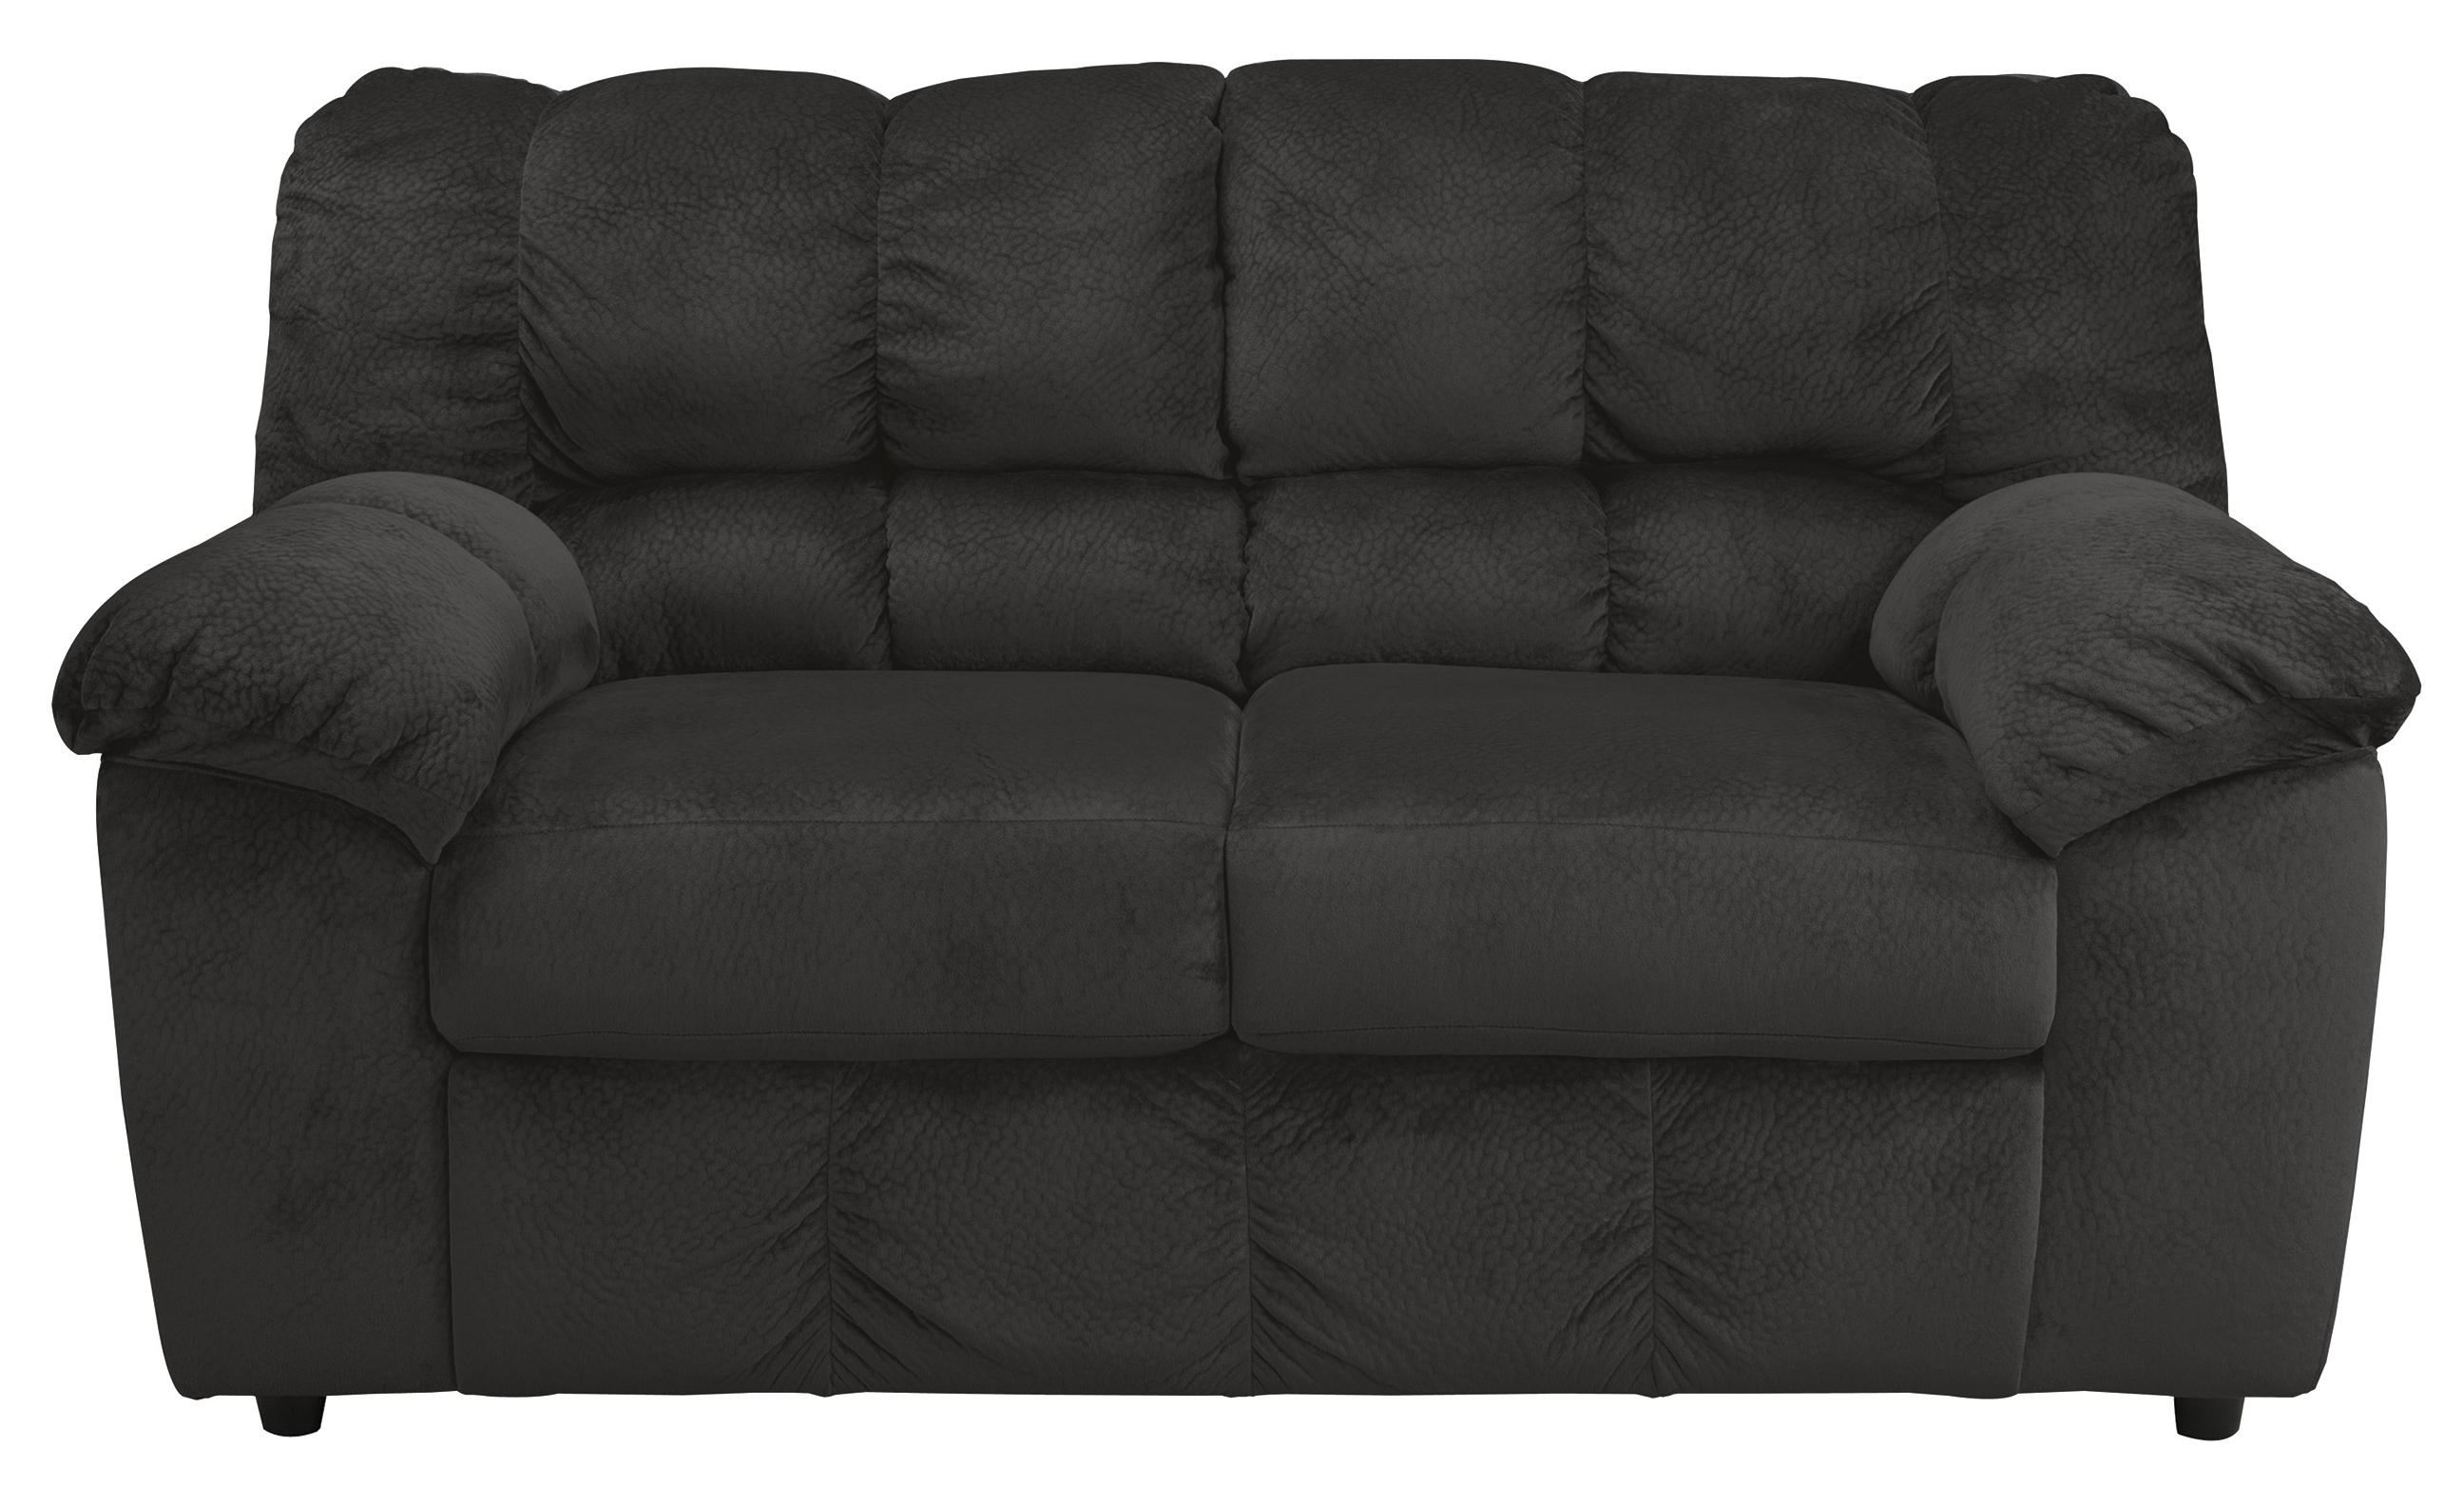 Signature Design by Ashley Julson - Ebony Loveseat - Item Number: 2660035